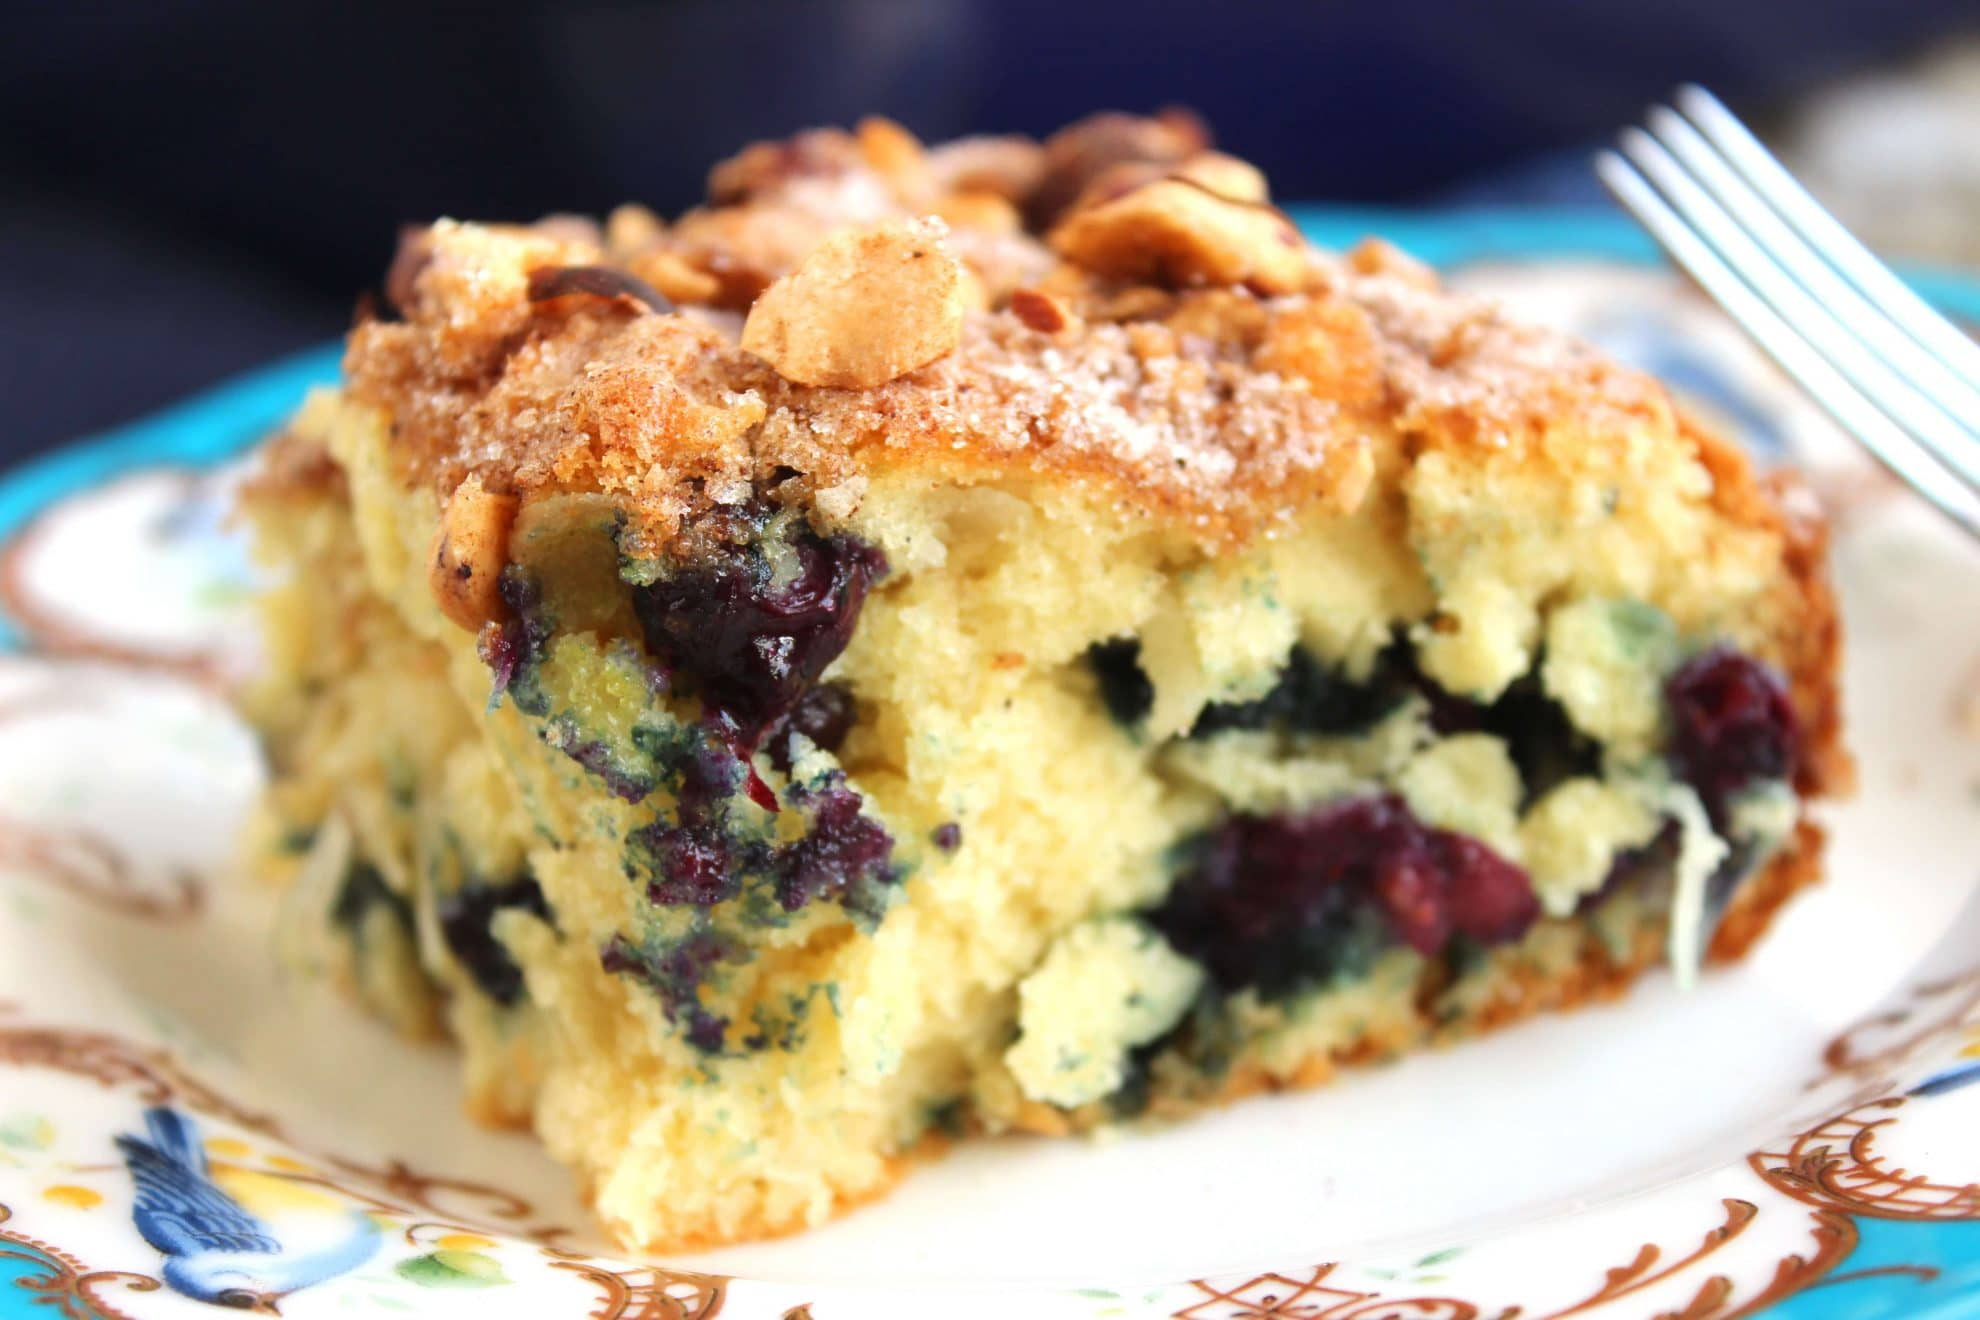 How To Make Lemon And Blueberry Cake